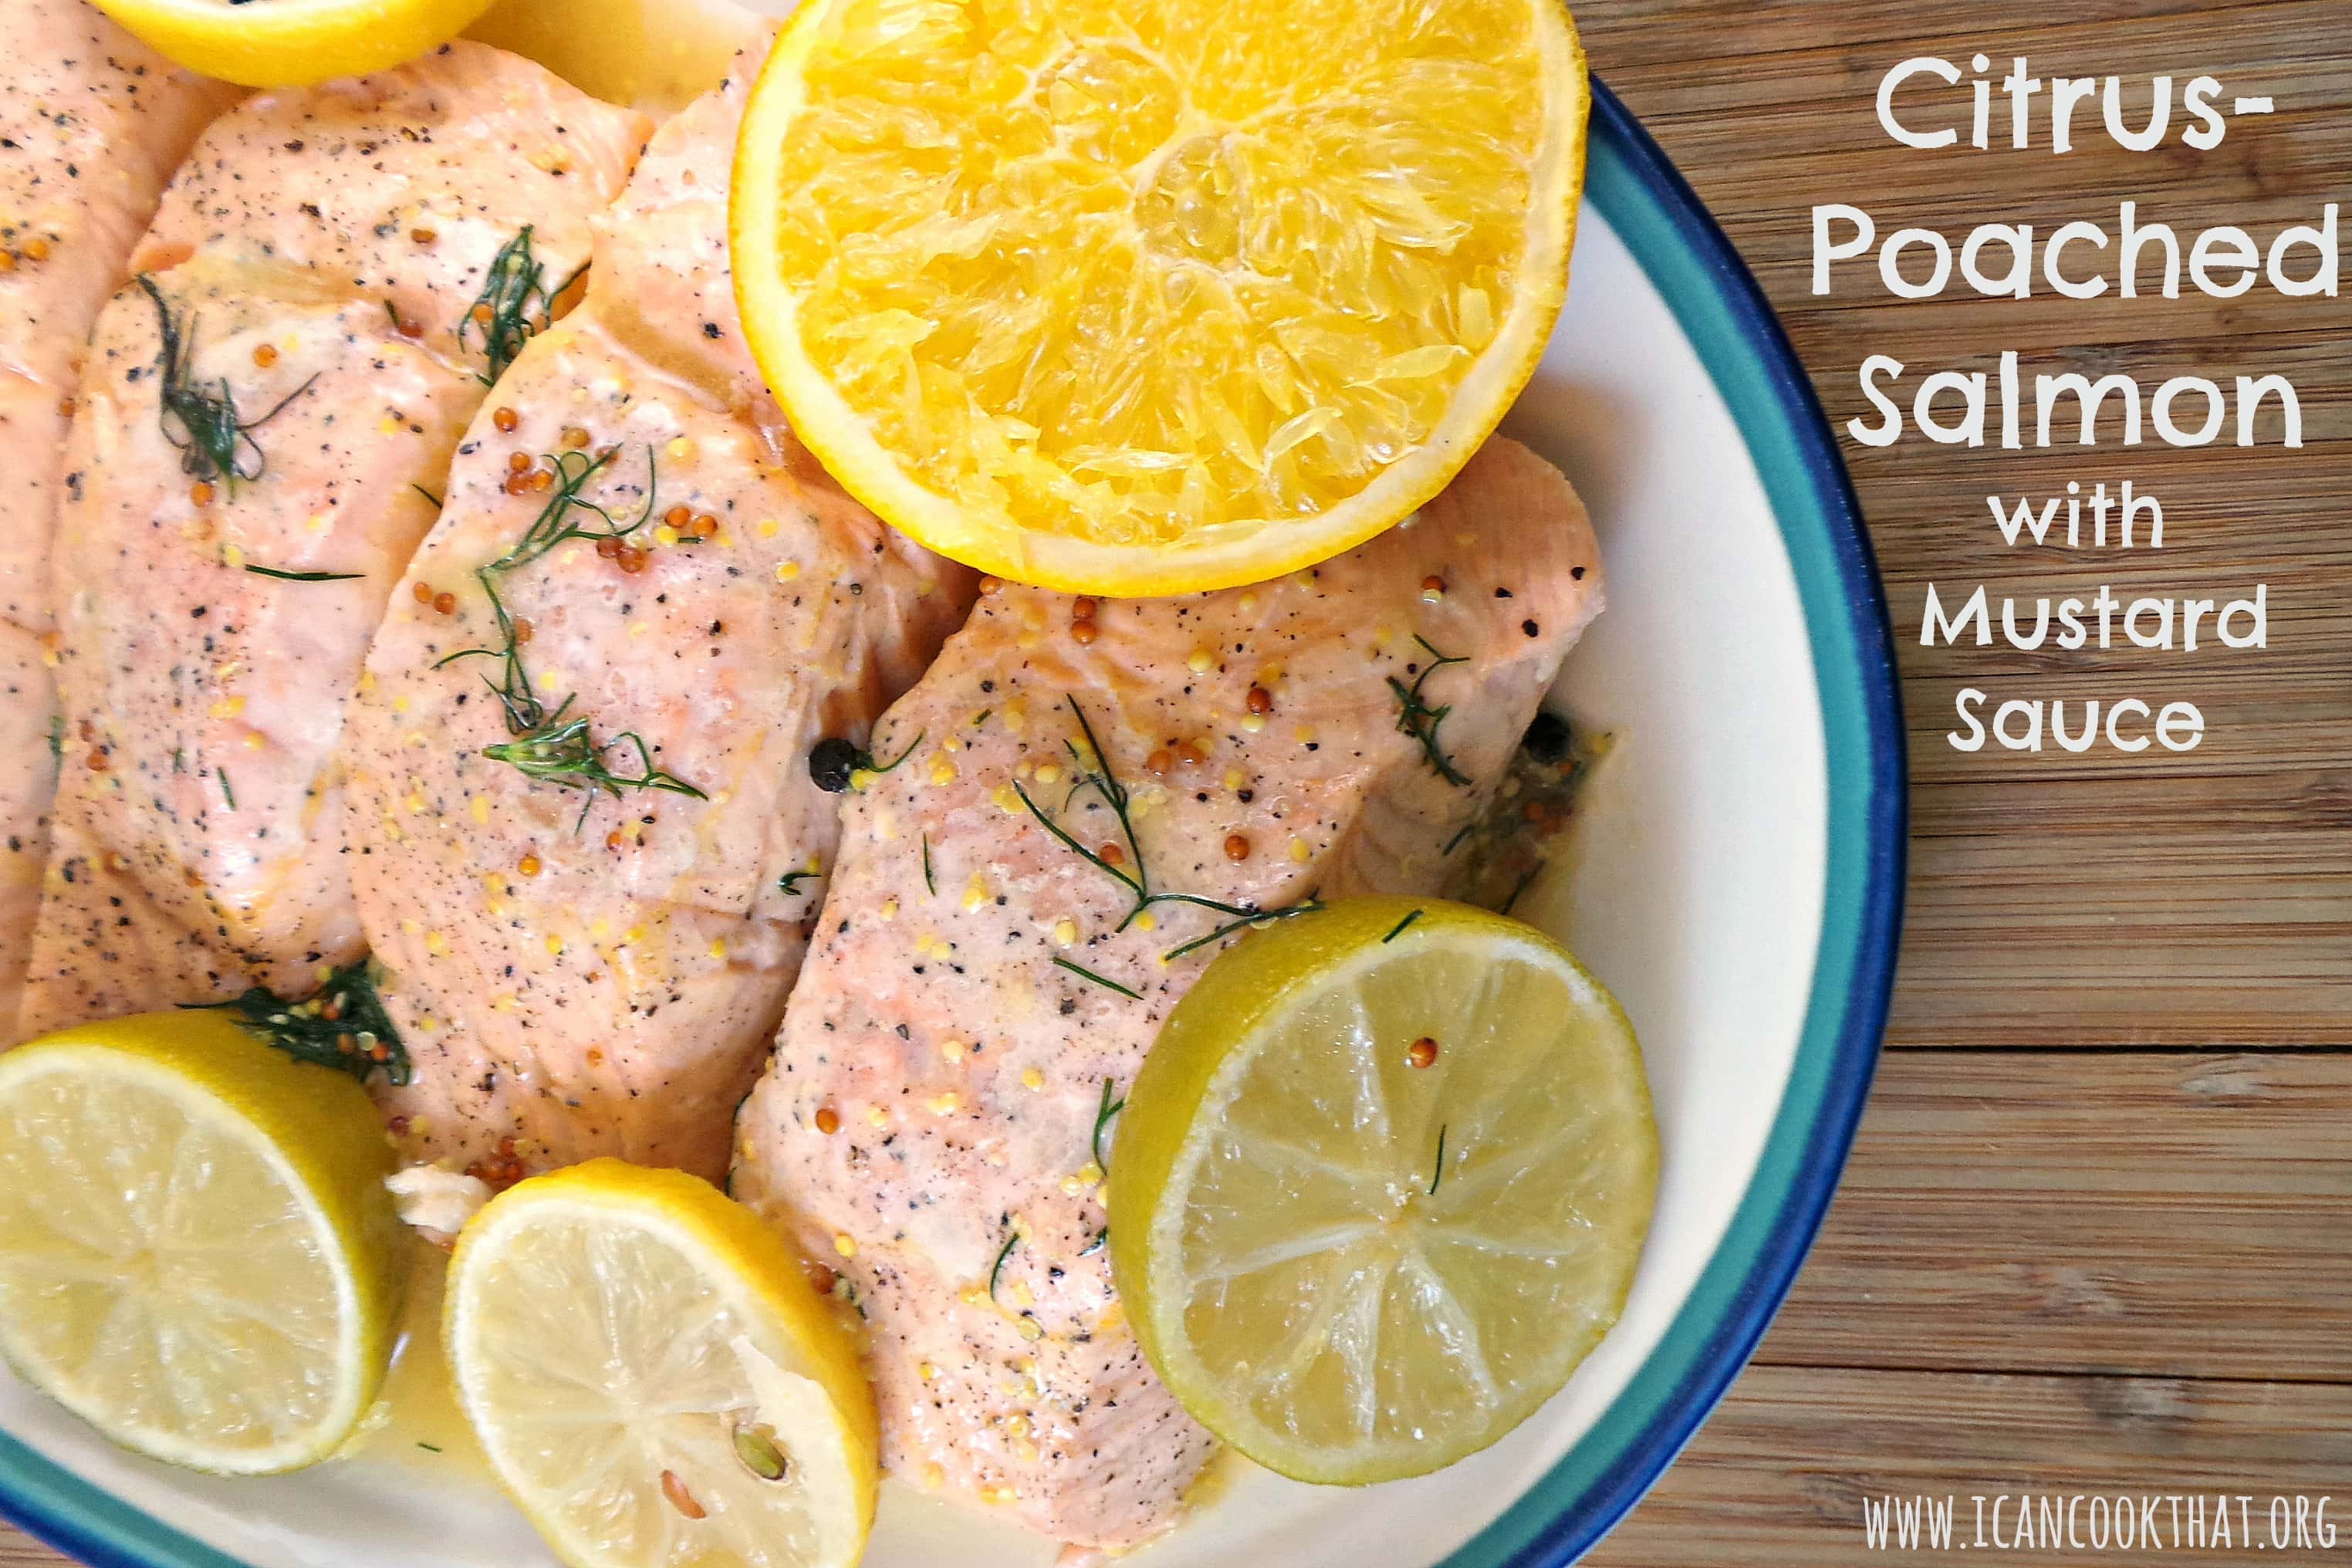 Citrus-Poached Salmon with Mustard Sauce